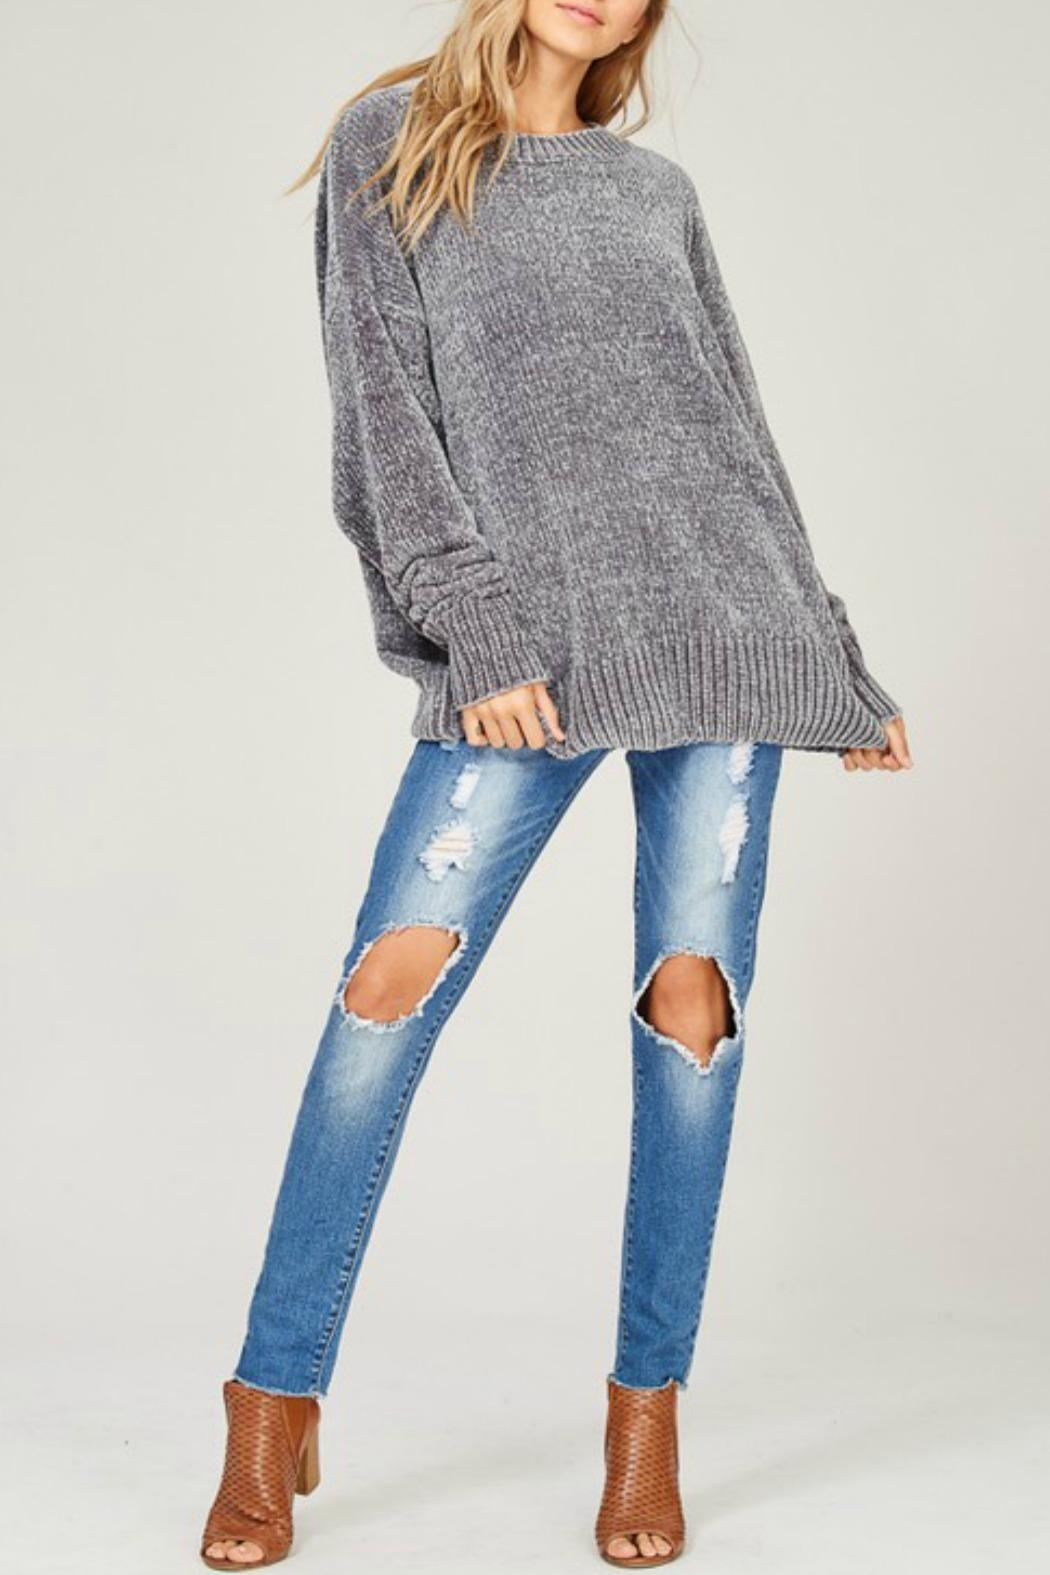 b57f9c56b59 Listicle Oversized Chenille Sweater from Connecticut by Deja Vu ...